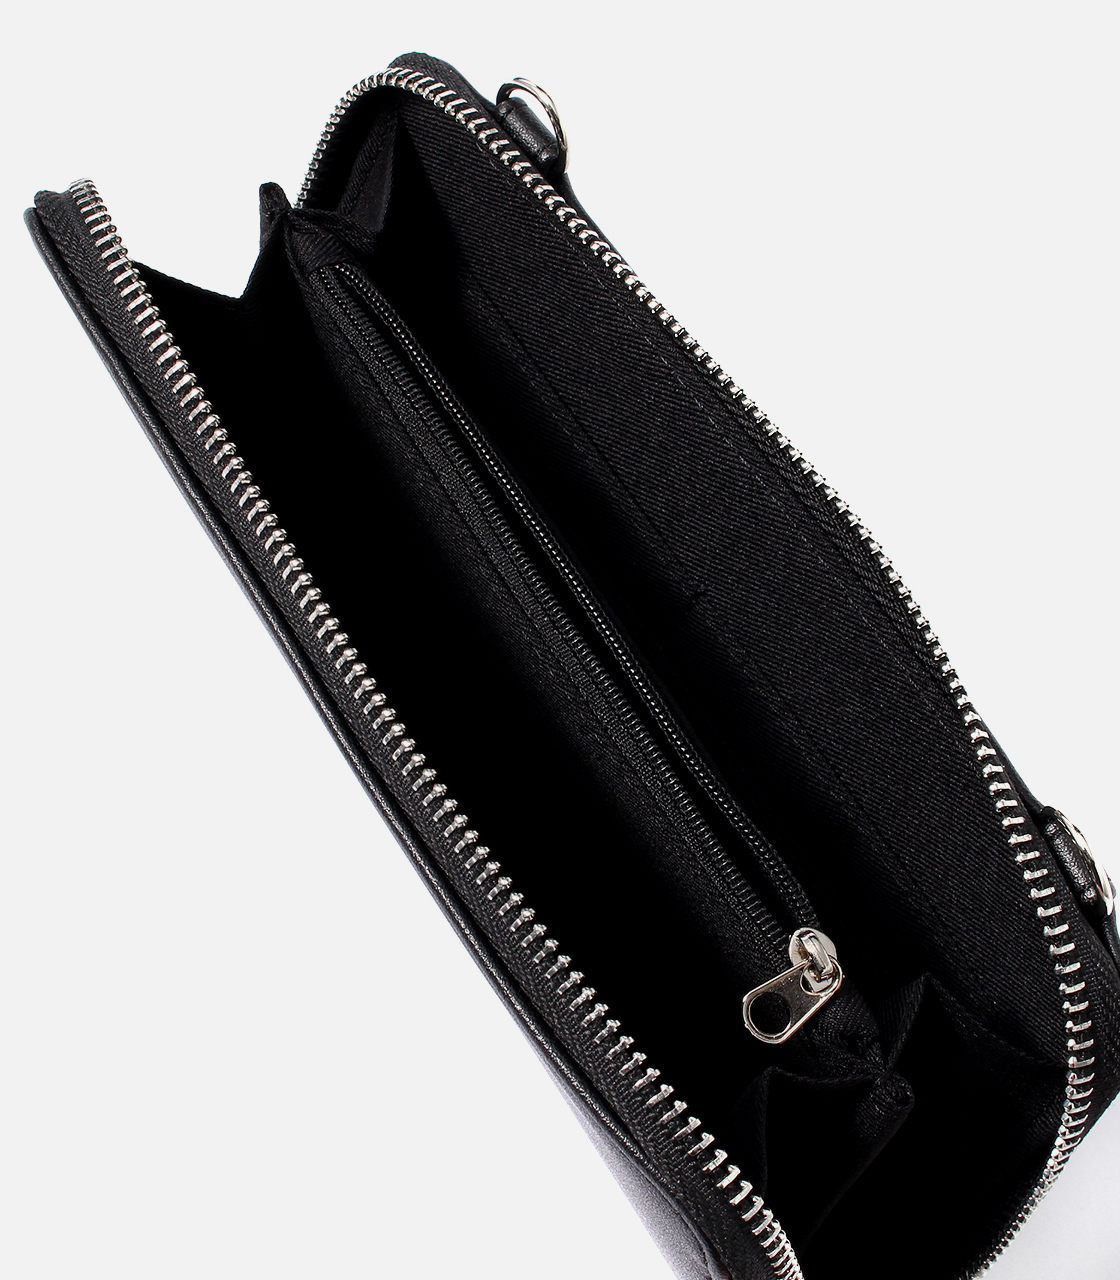 【AZUL BY MOUSSY】PAPER WALLET SHOULDER BAG 詳細画像 BLK 5